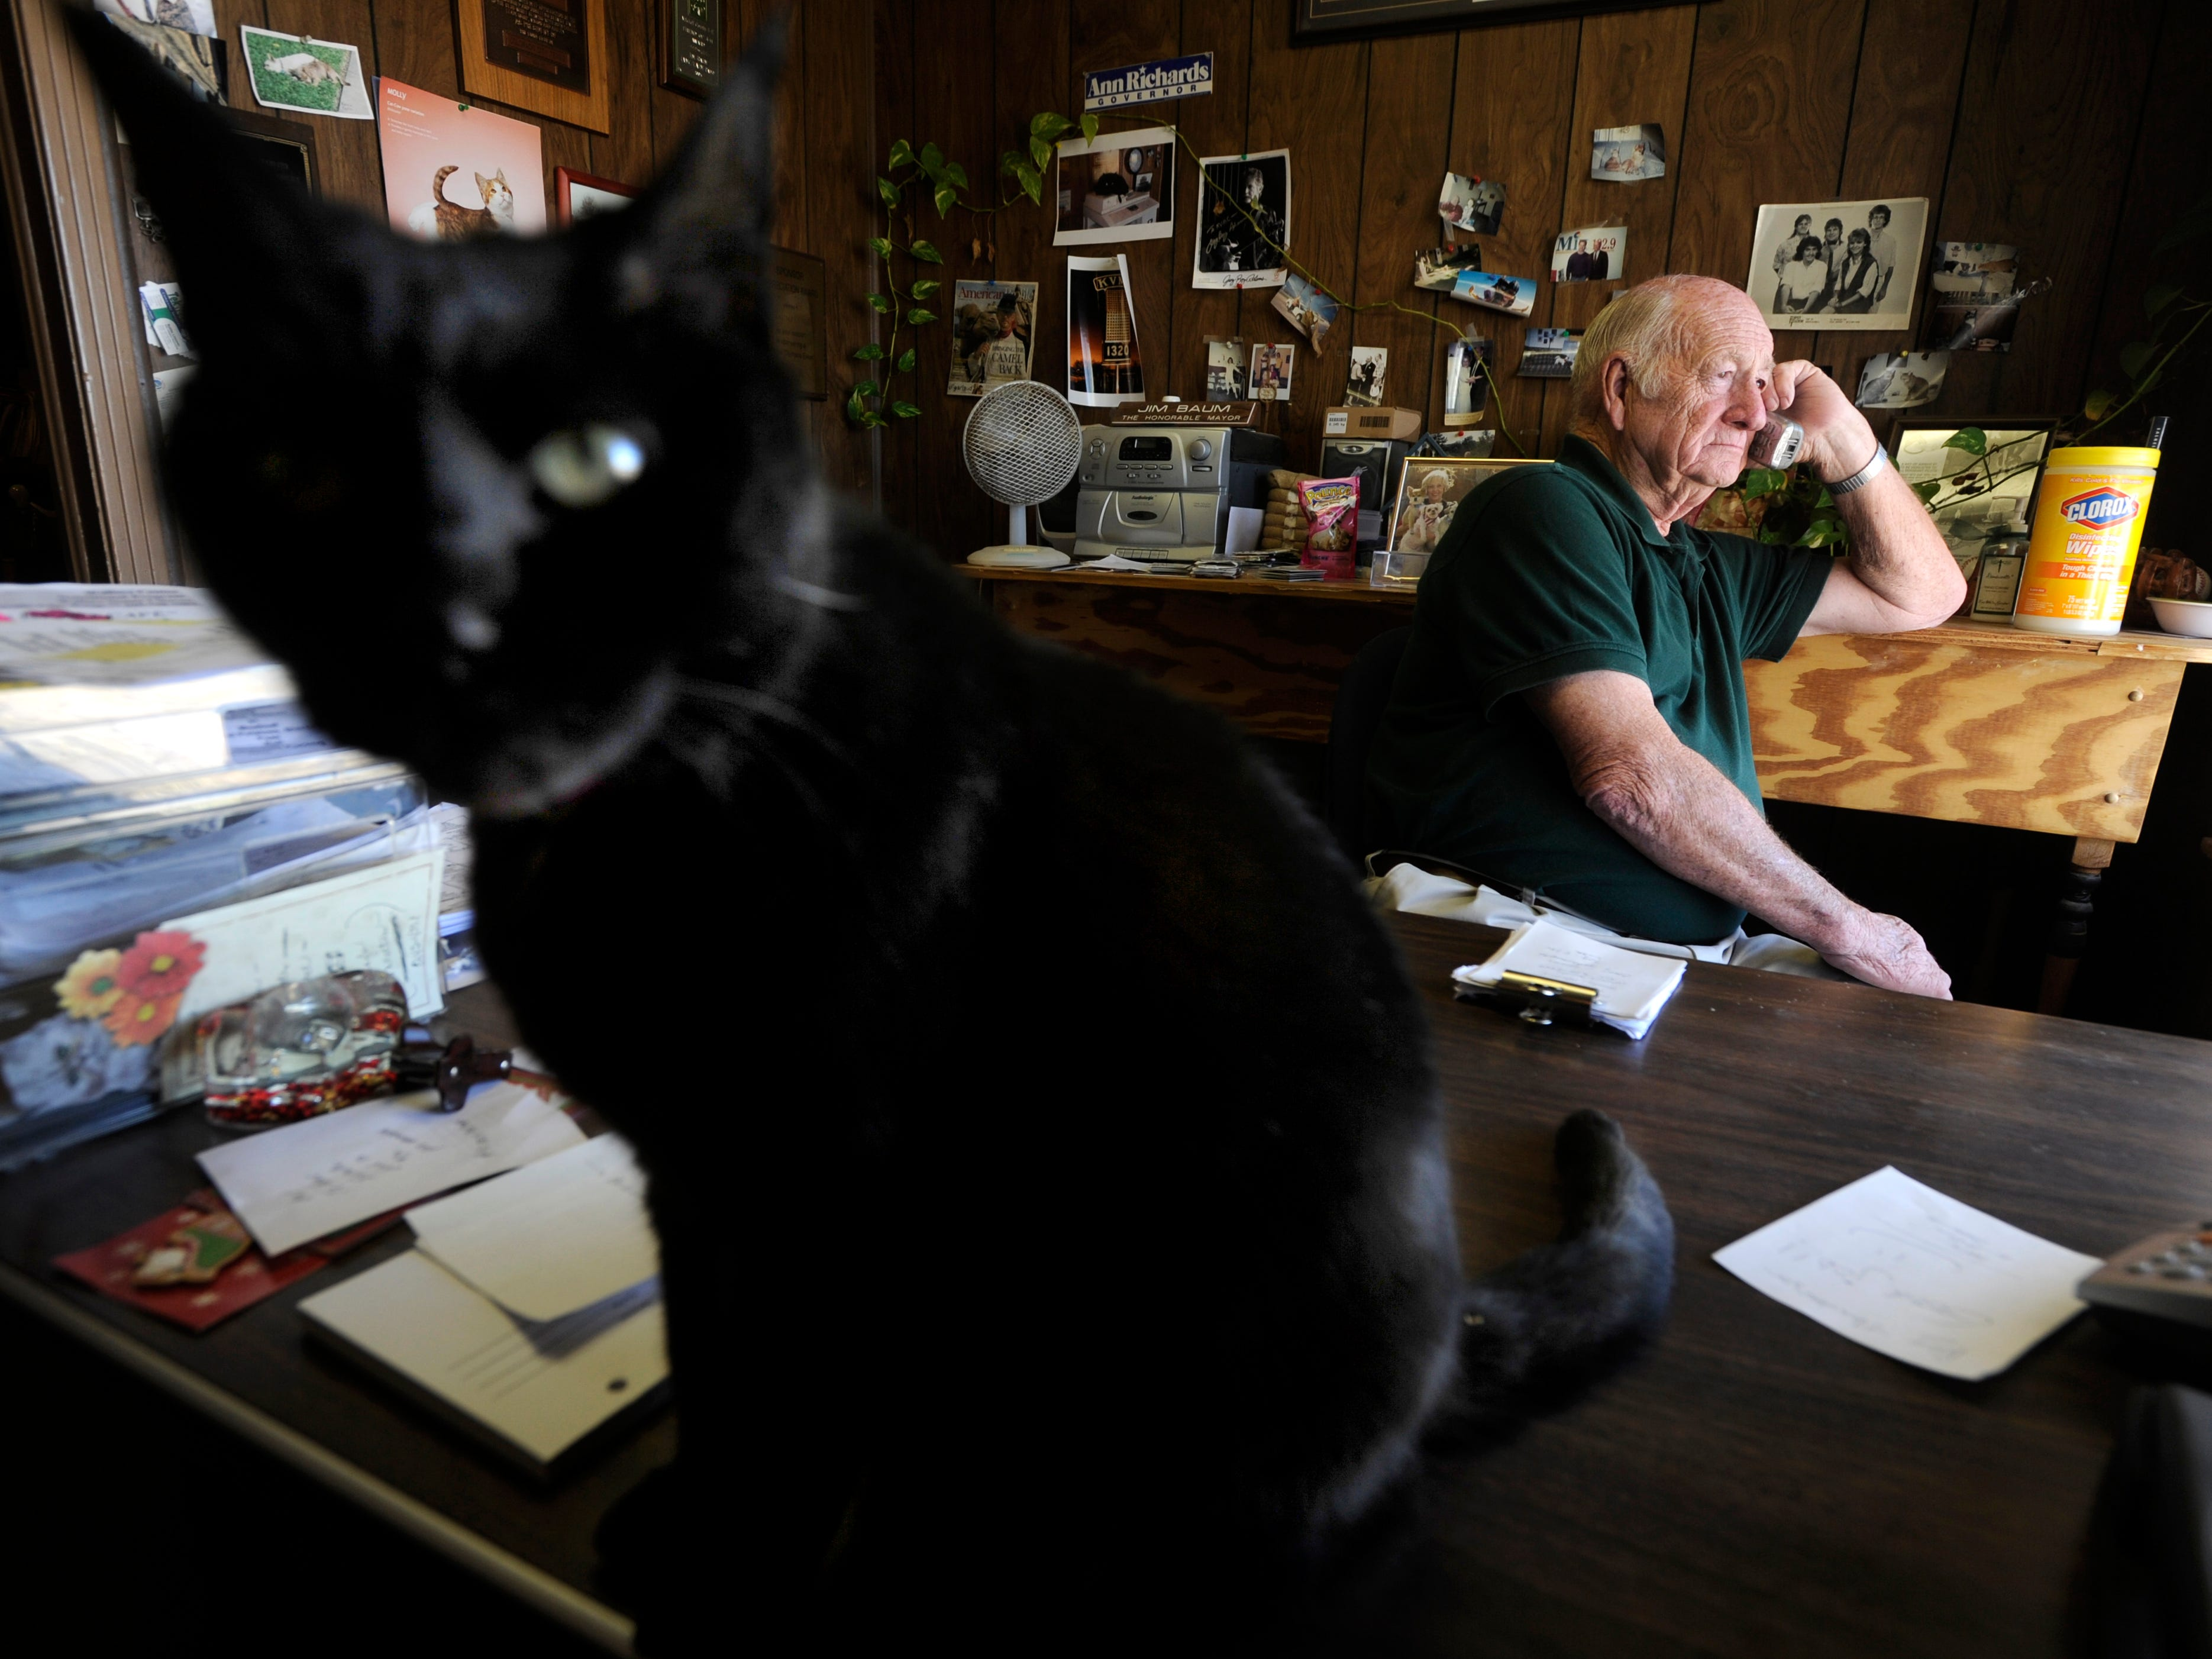 Squeak, the station cat at KVMC/KAUM in Colorado City, sits on the edge of Jim Baum's desk as he fields a call Monday, Feb. 28, 2011. People were calling in to express their thanks to Baum for keeping them informed during the previous night's wildfire that destroyed several homes north of town. Baum, who bought the station in 1980, died Sunday Dec. 16, 2018.